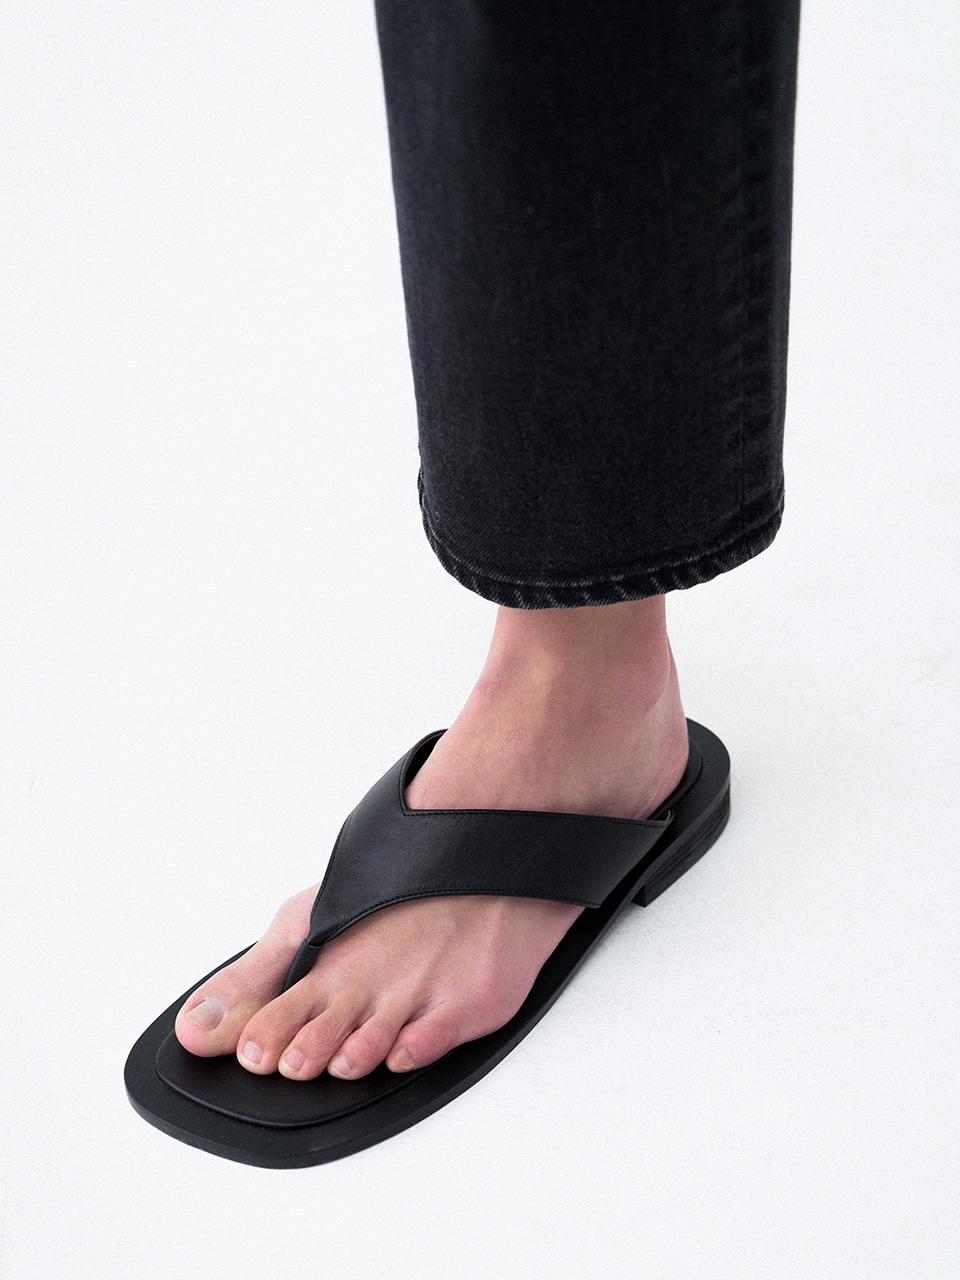 Square Toe Flip-flops Slides Black